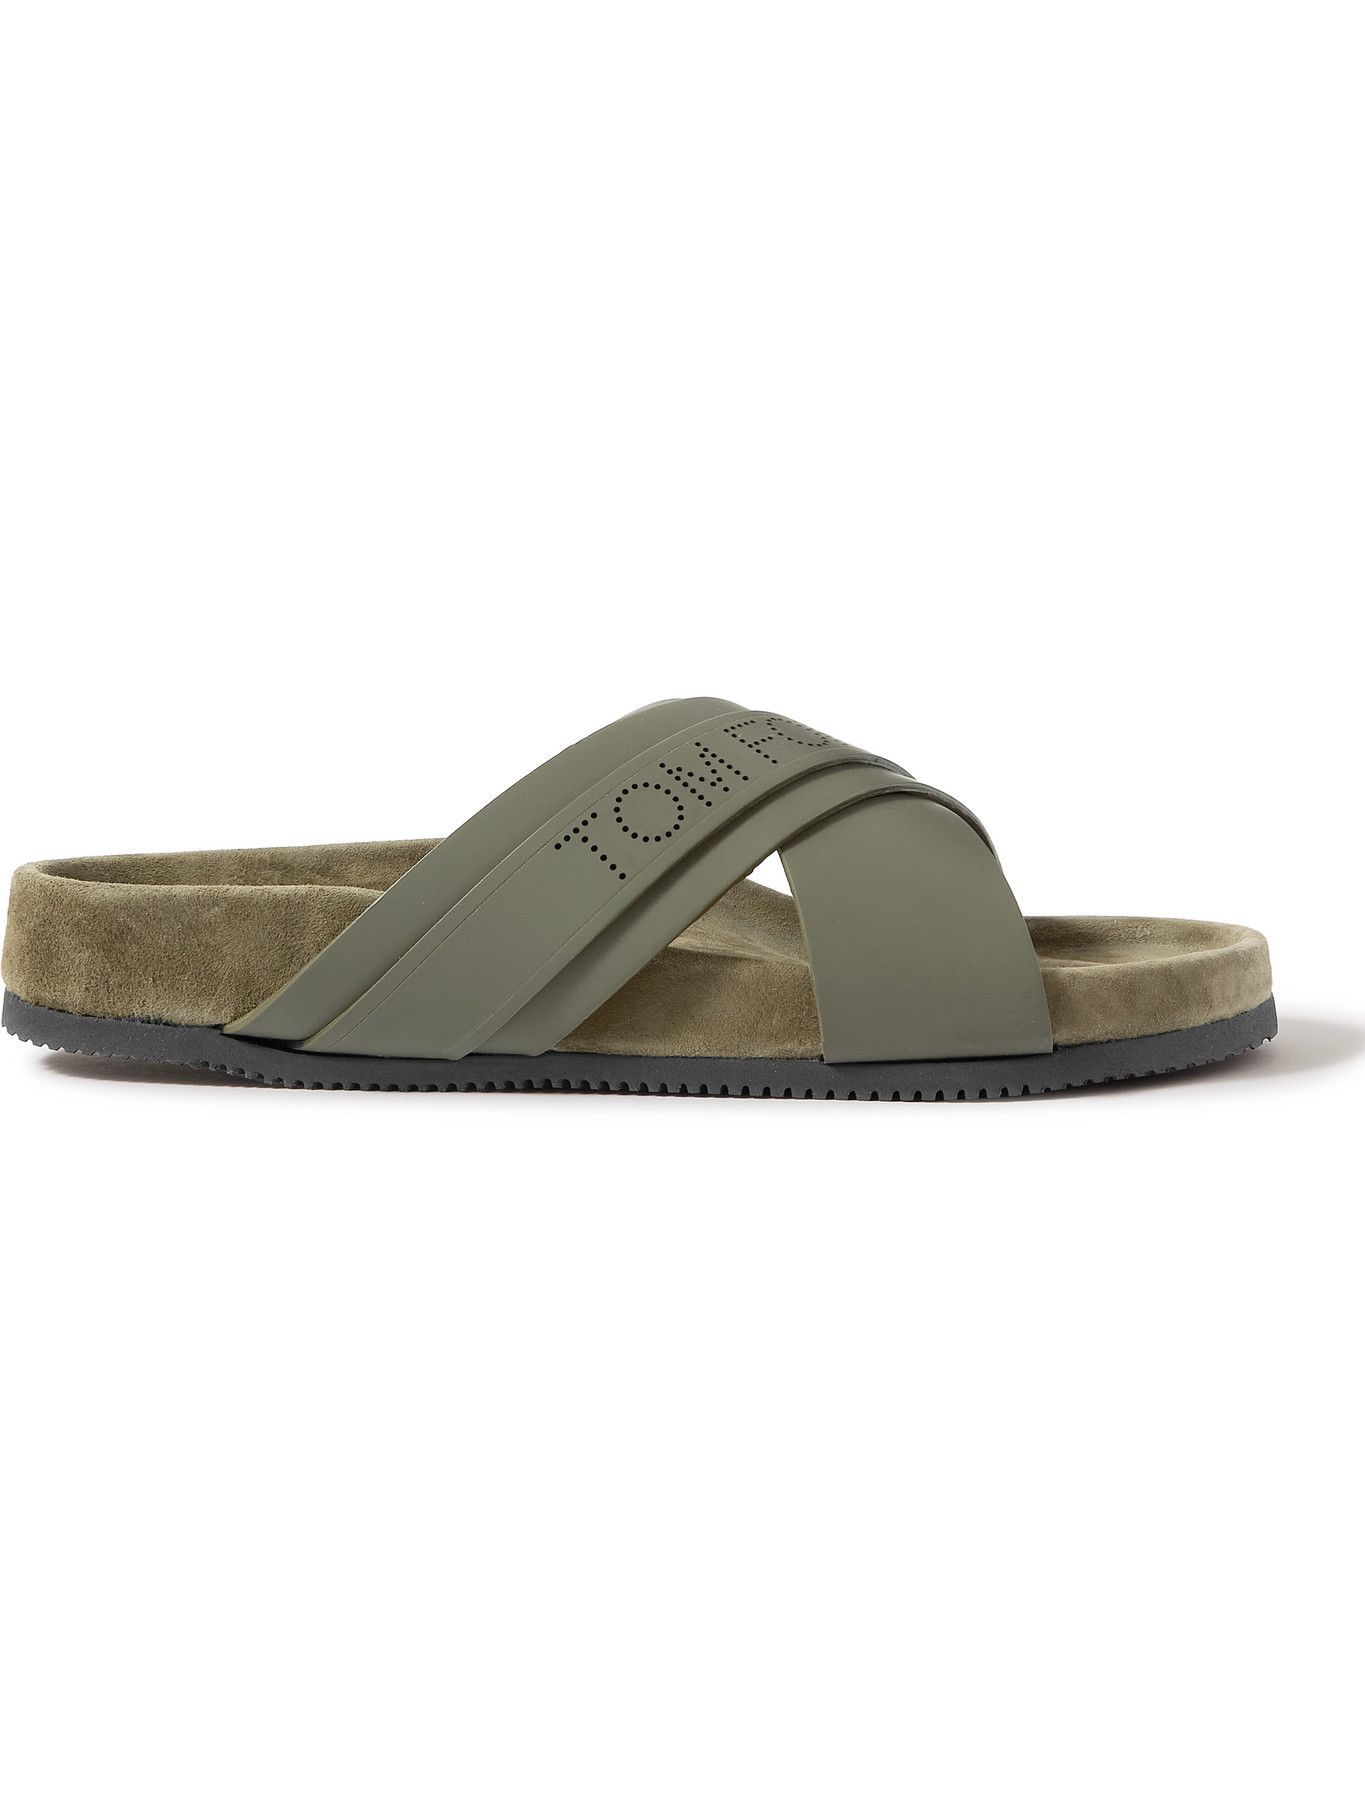 TOM FORD - Wicklow Leather and Suede Sandals - Green